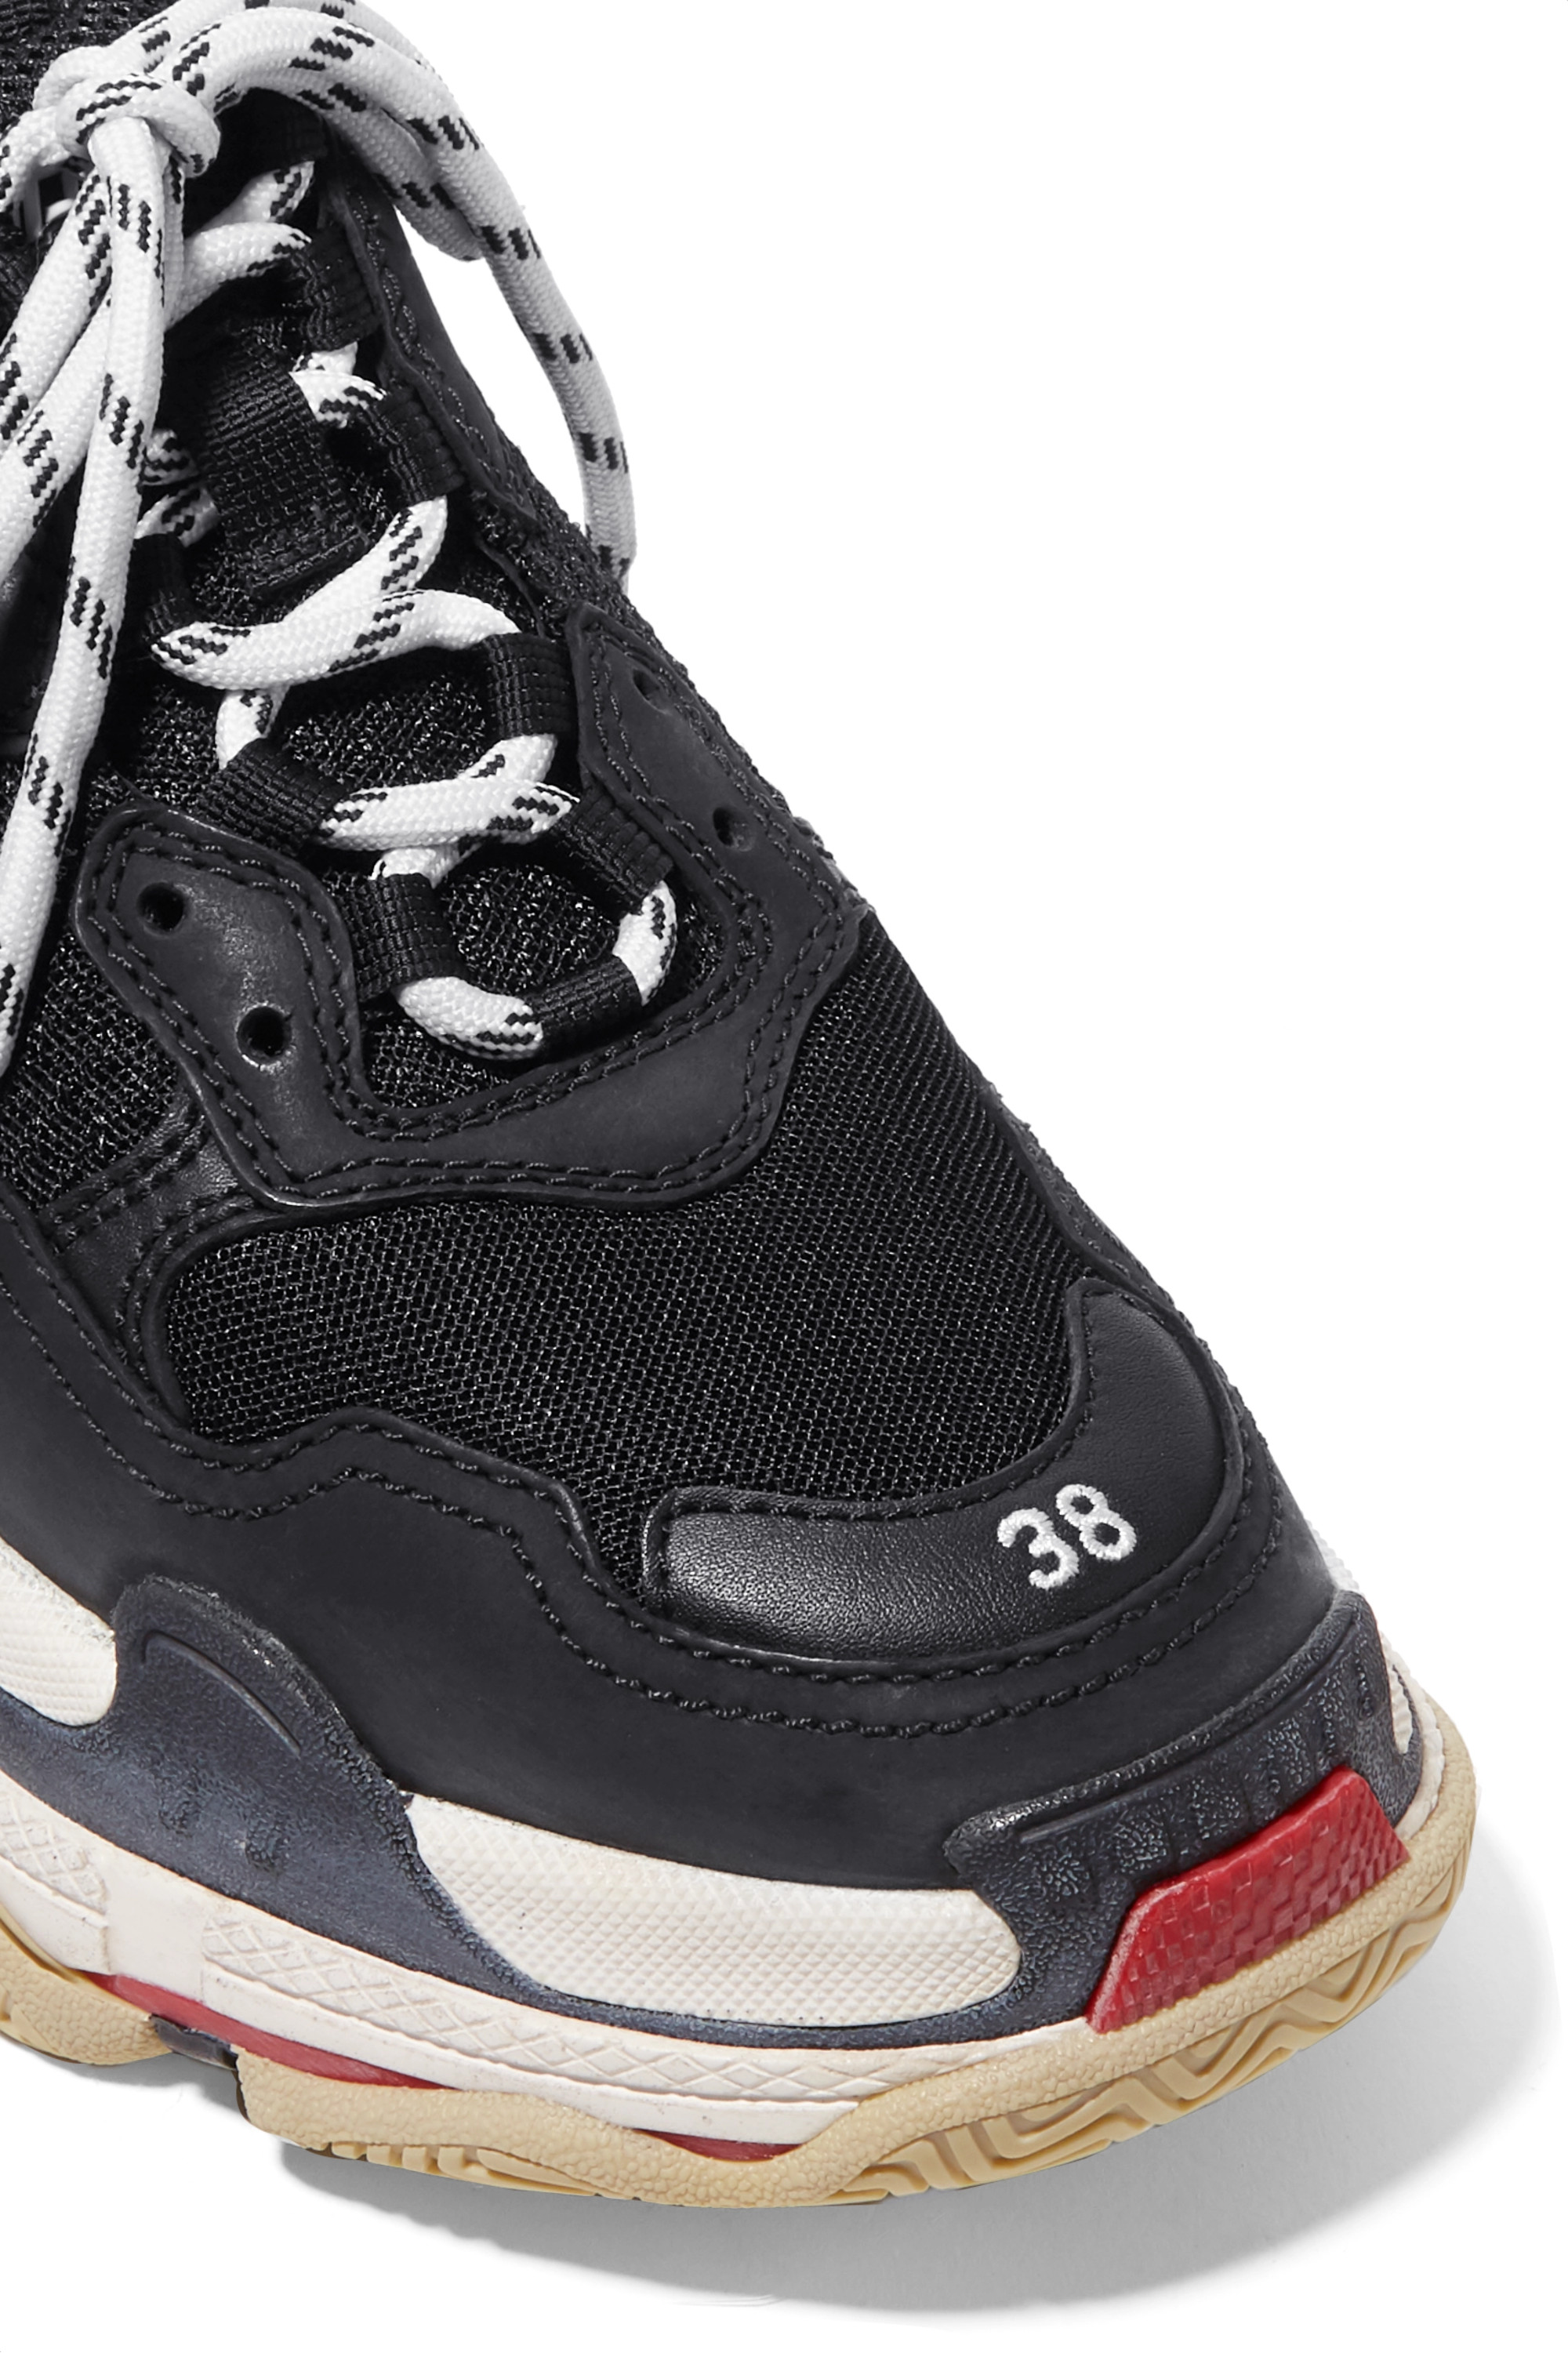 Balenciaga Shoes Triple S Size 43 Which is Like A 95